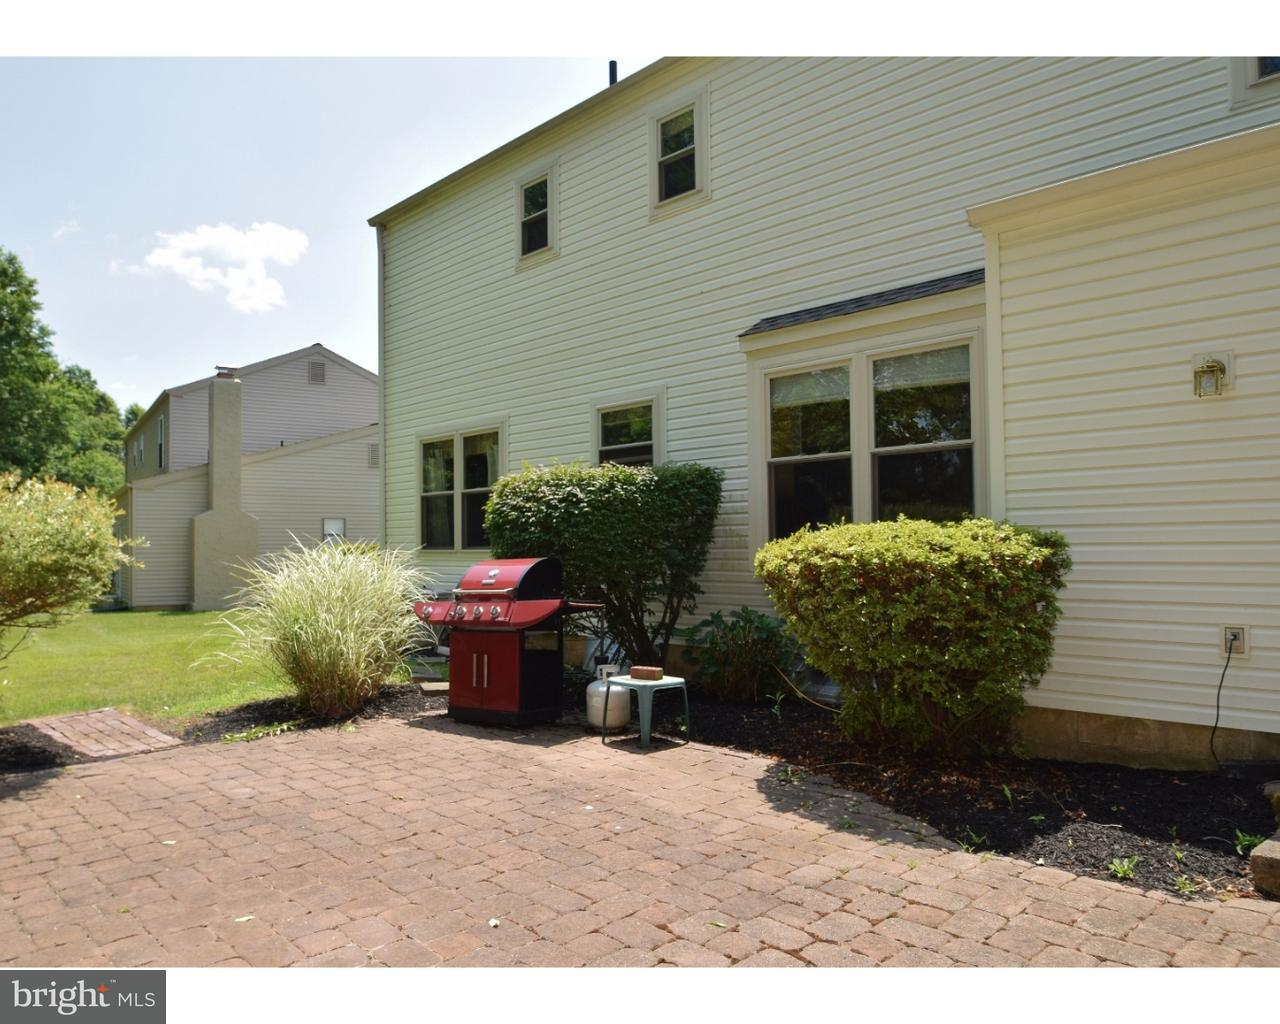 115 CANTERBURY LN, LANSDALE - Listed at $385,000, LANSDALE